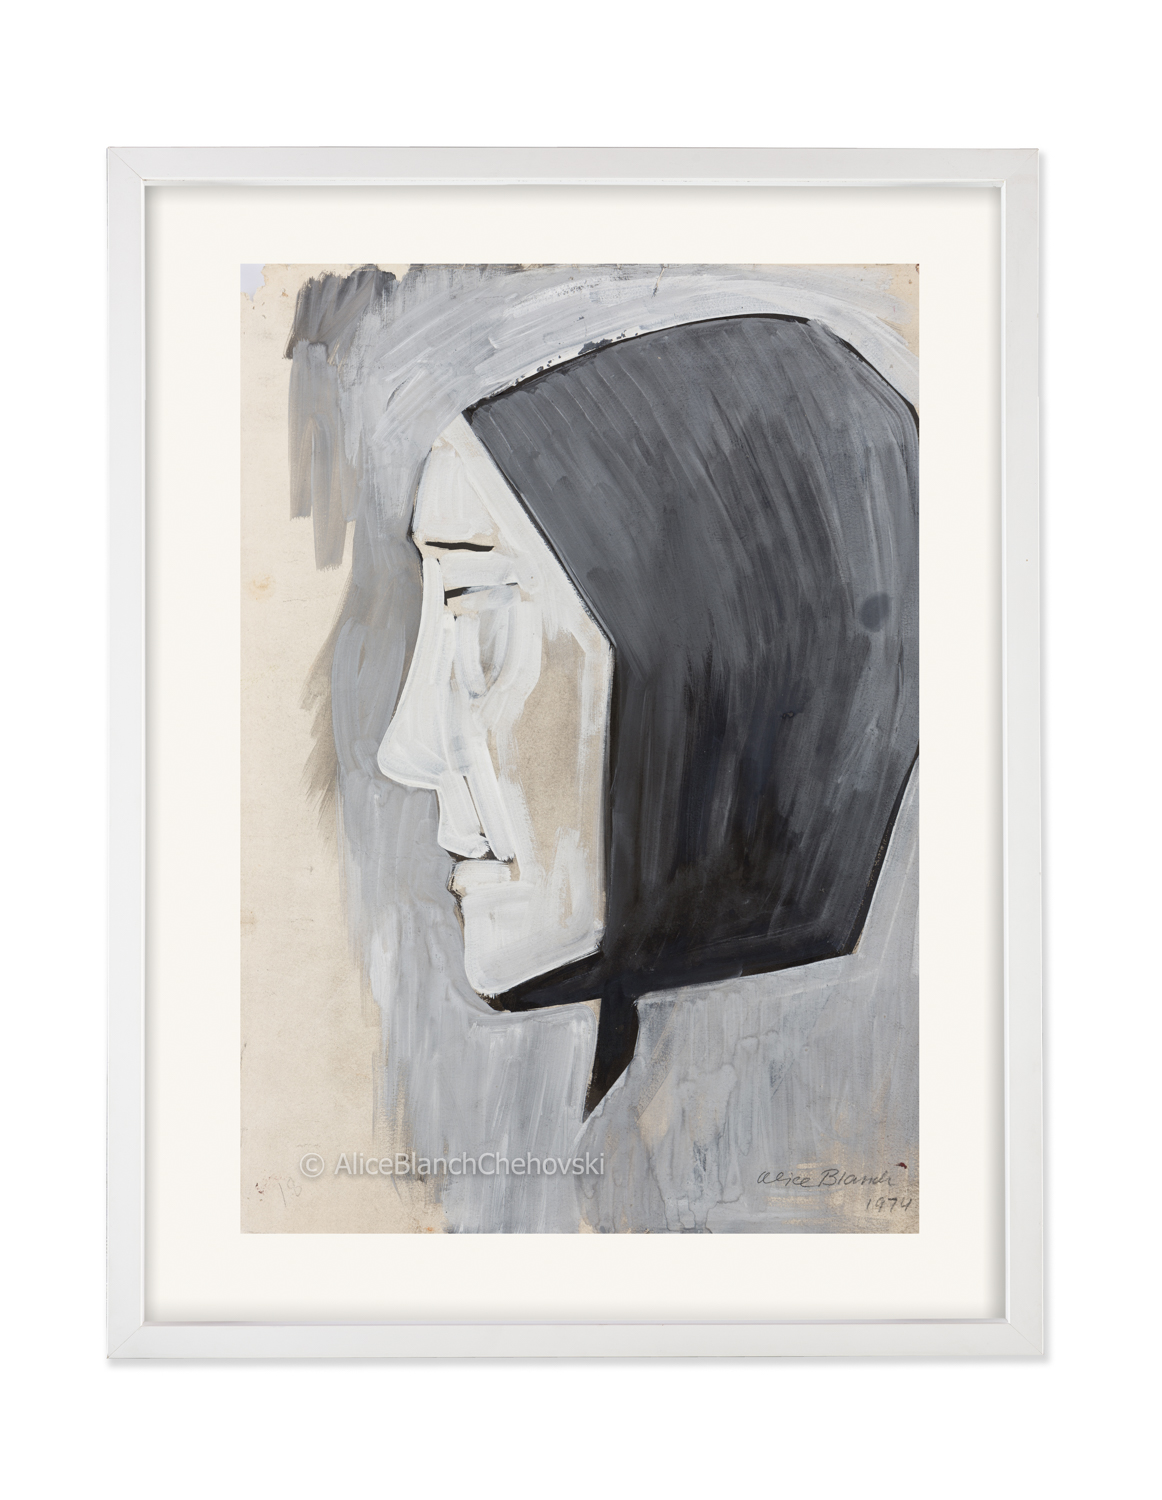 Woman's Head for Burial, 1974